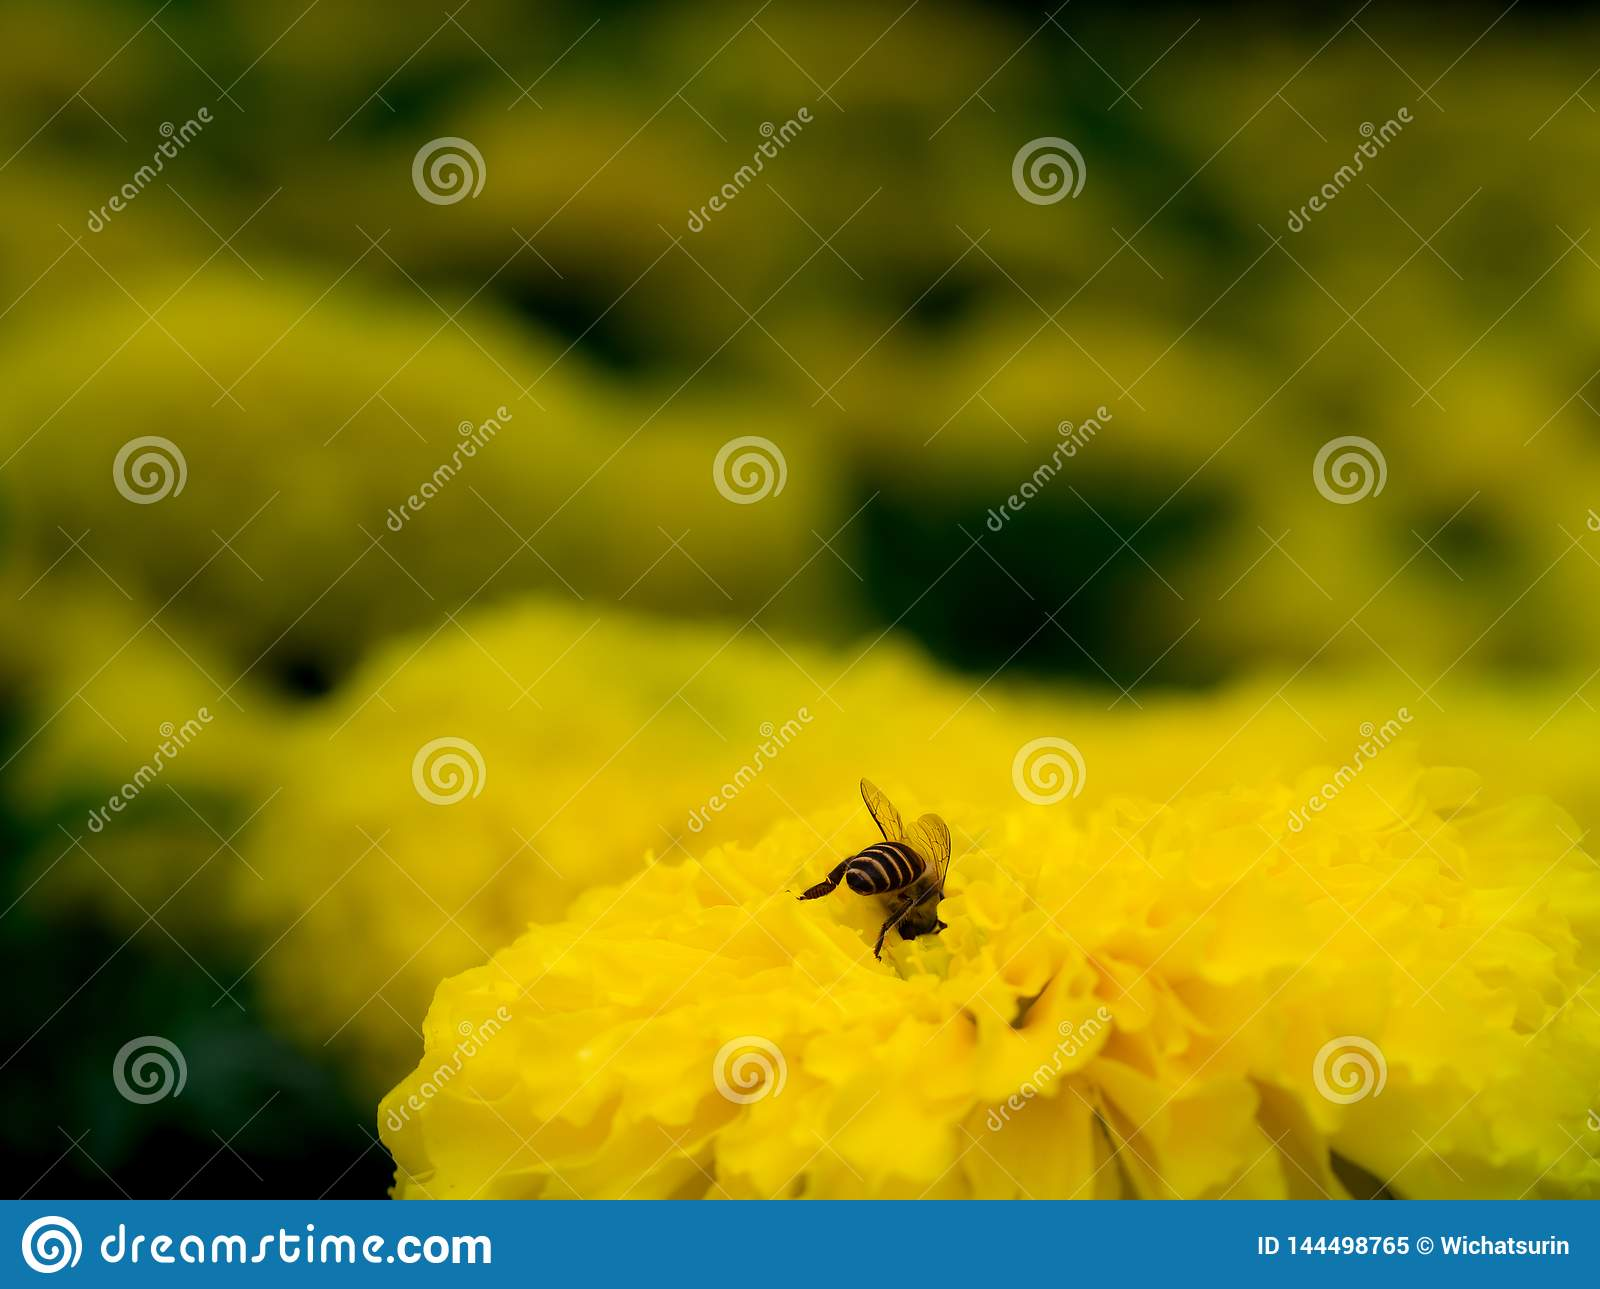 Bee Burrowed into The Flower to Feed on Nectar